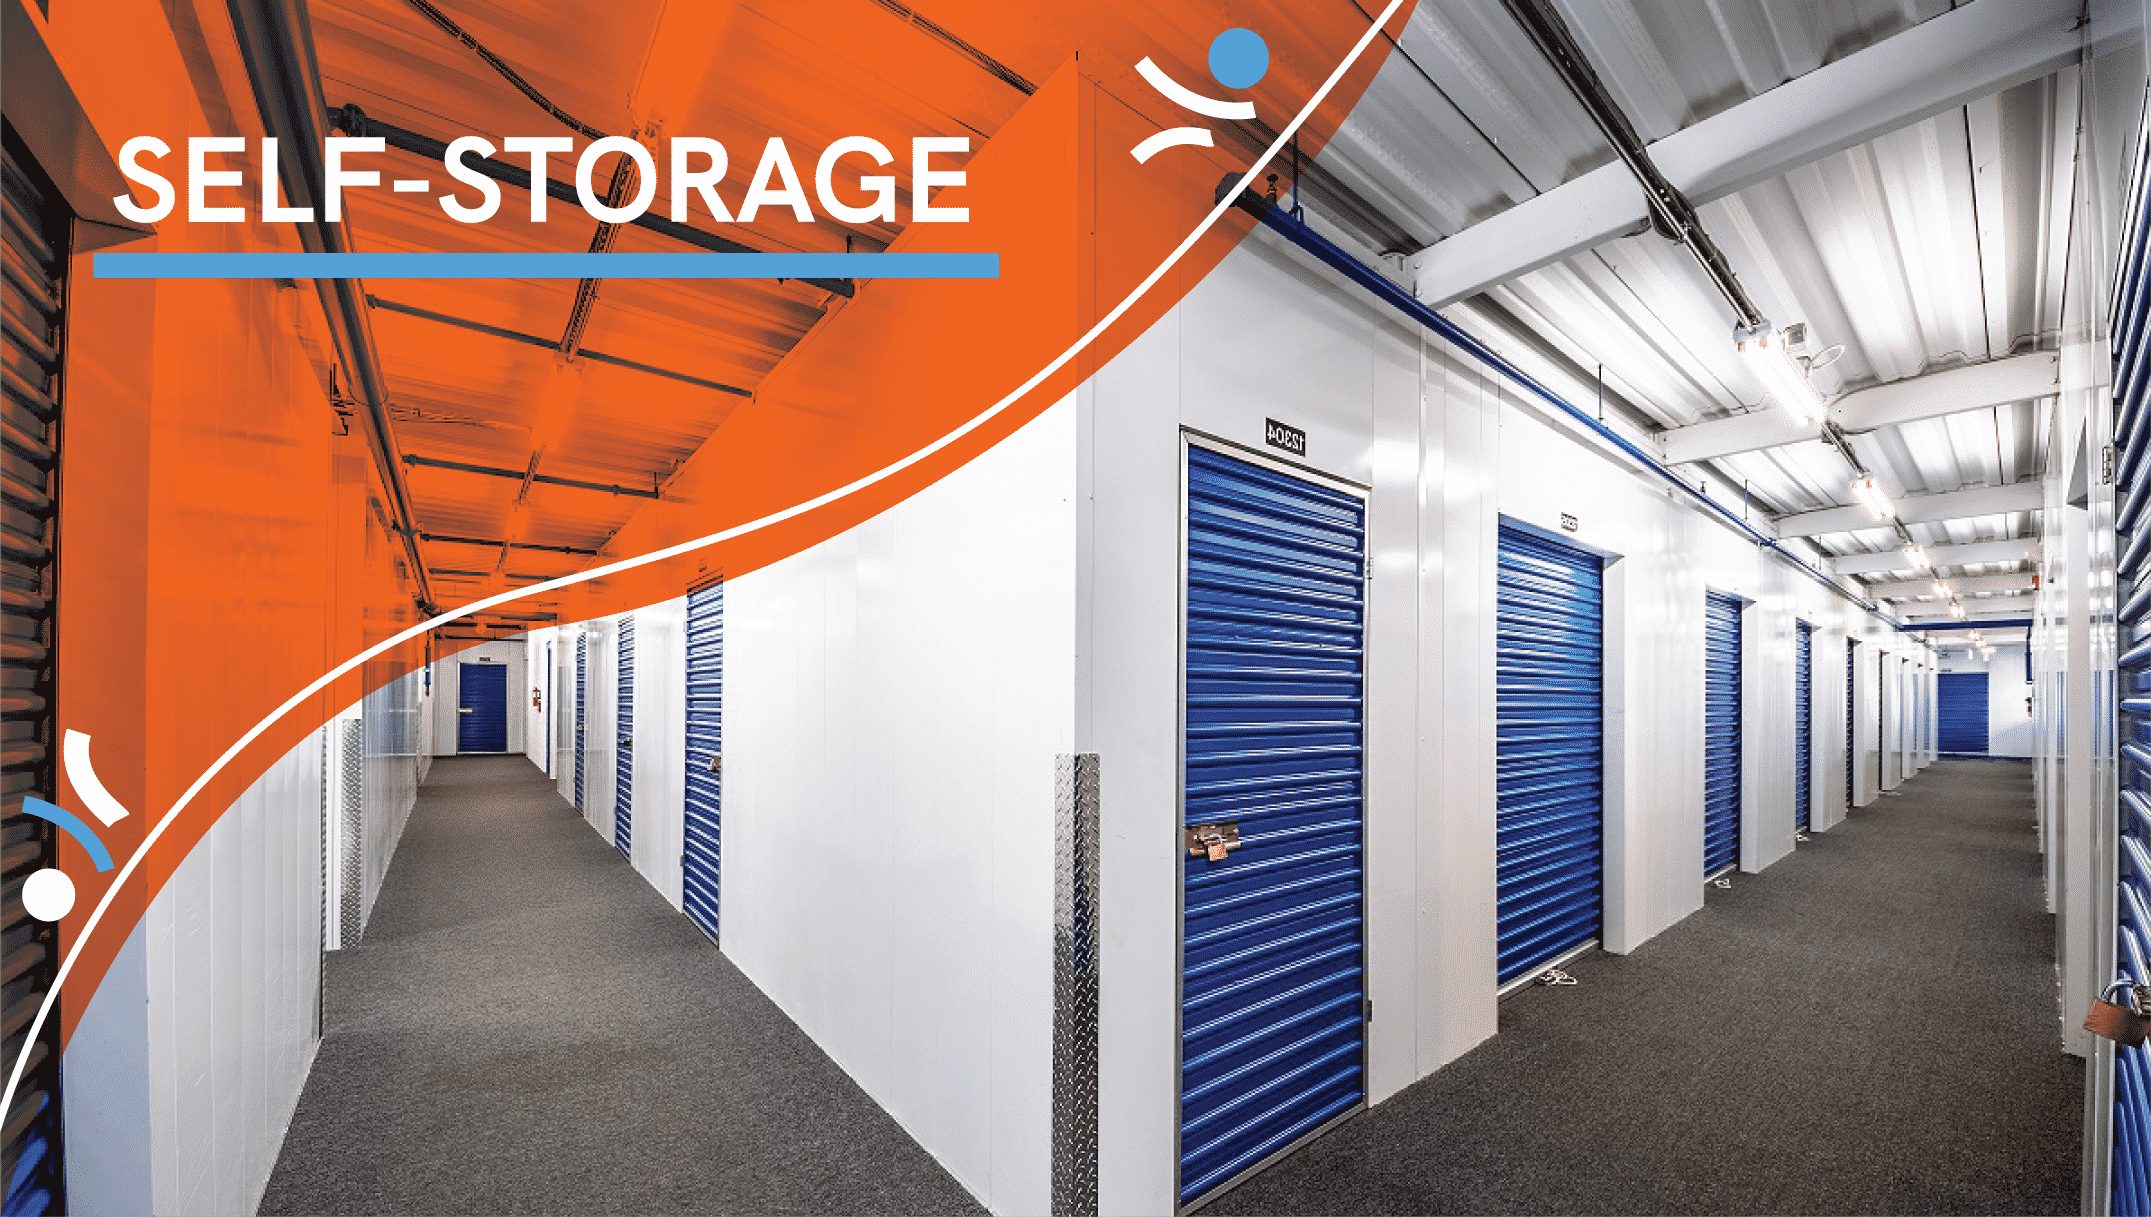 Self storage geofencing case study